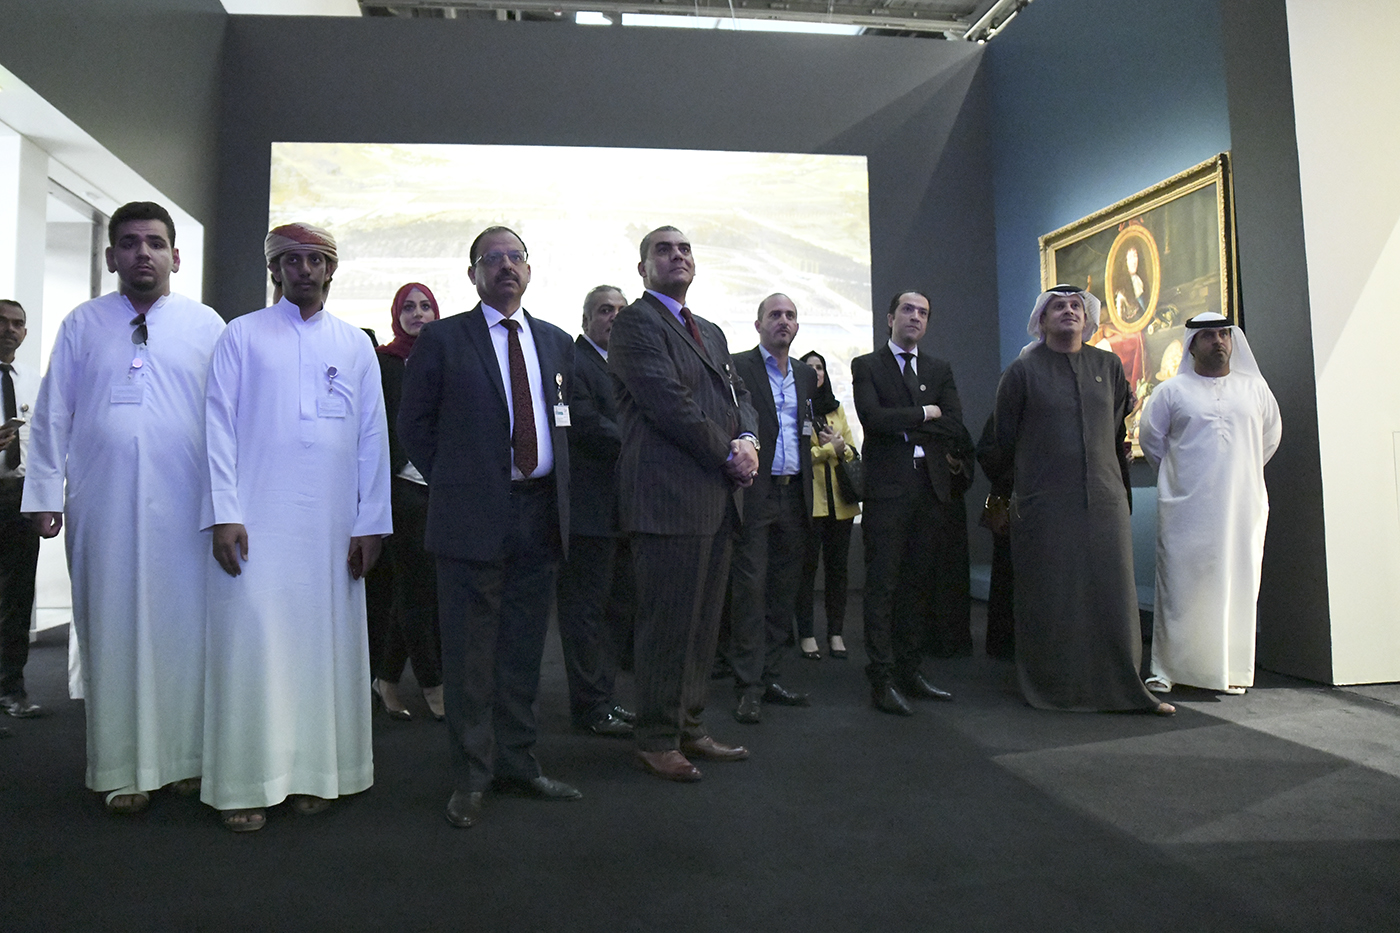 A Visit to Louvre Abu Dhabi - Al Ain University of Science and